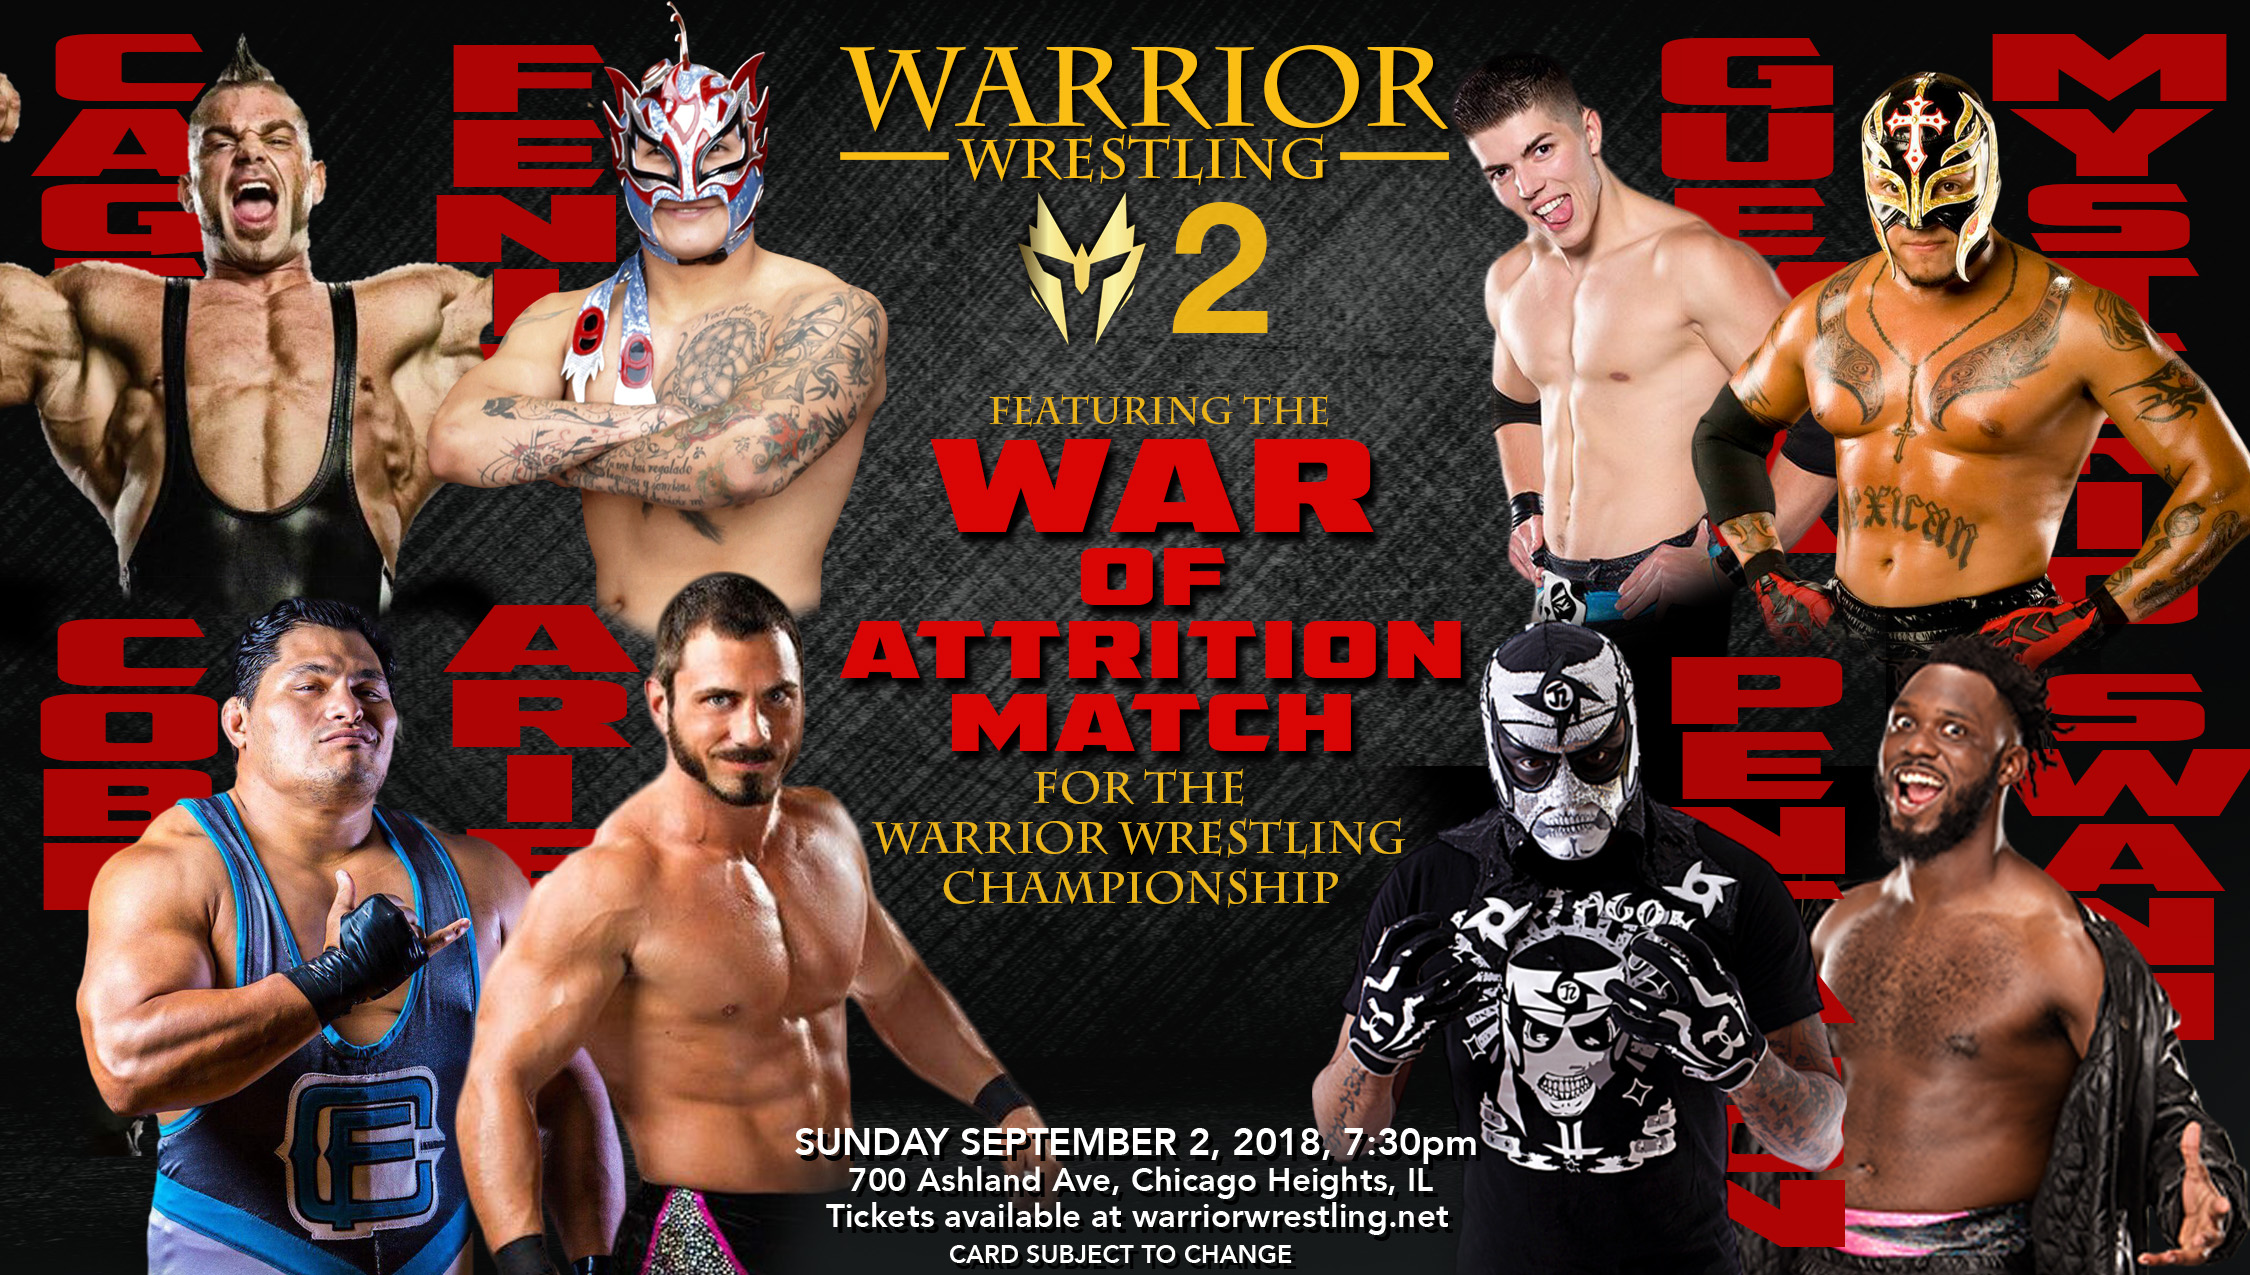 The main event of Warrior Wrestling 2 features the War of Attrition Match featuring Brian Cage (from top left, clockwise), Fenix, Sammy Guevara, Rey Mysterio, Rich Swann, Pentagon Jr., Austin Aries and Jeff Cobb.  (Photo courtesy of Warrior Wrestling)